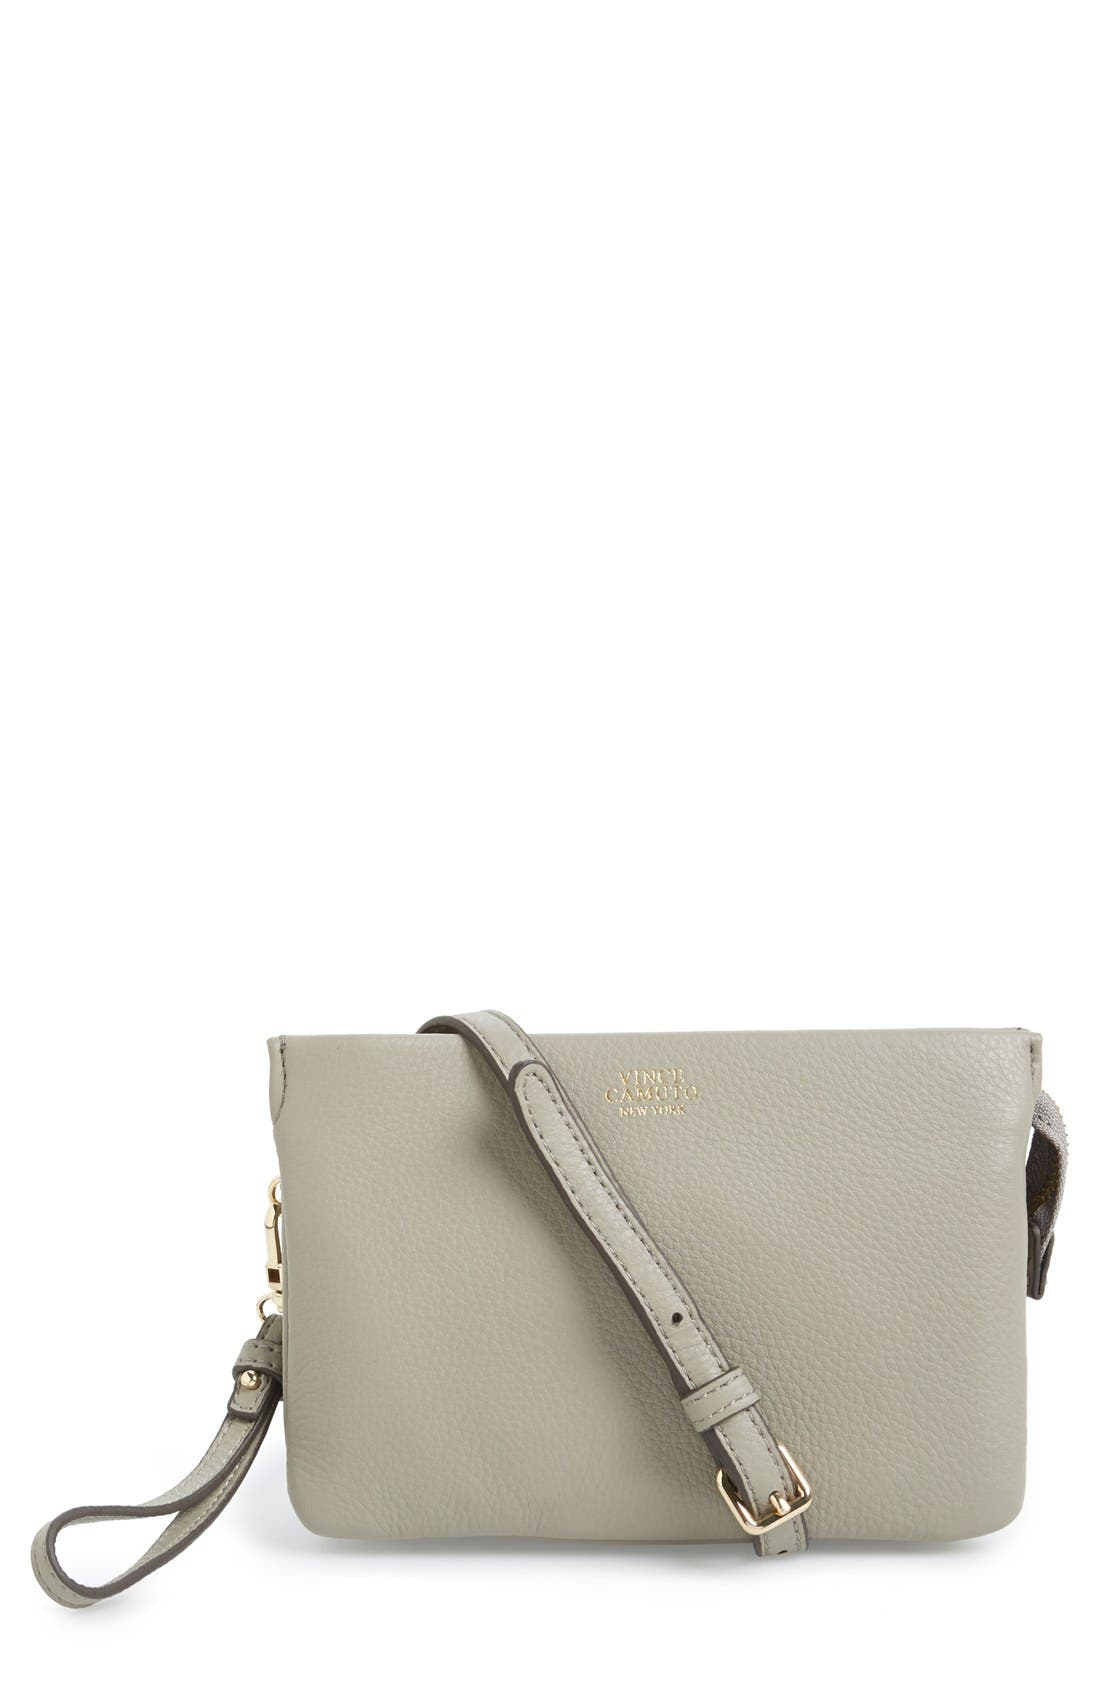 'Cami' Leather Crossbody Bag,                             Main thumbnail 3, color,